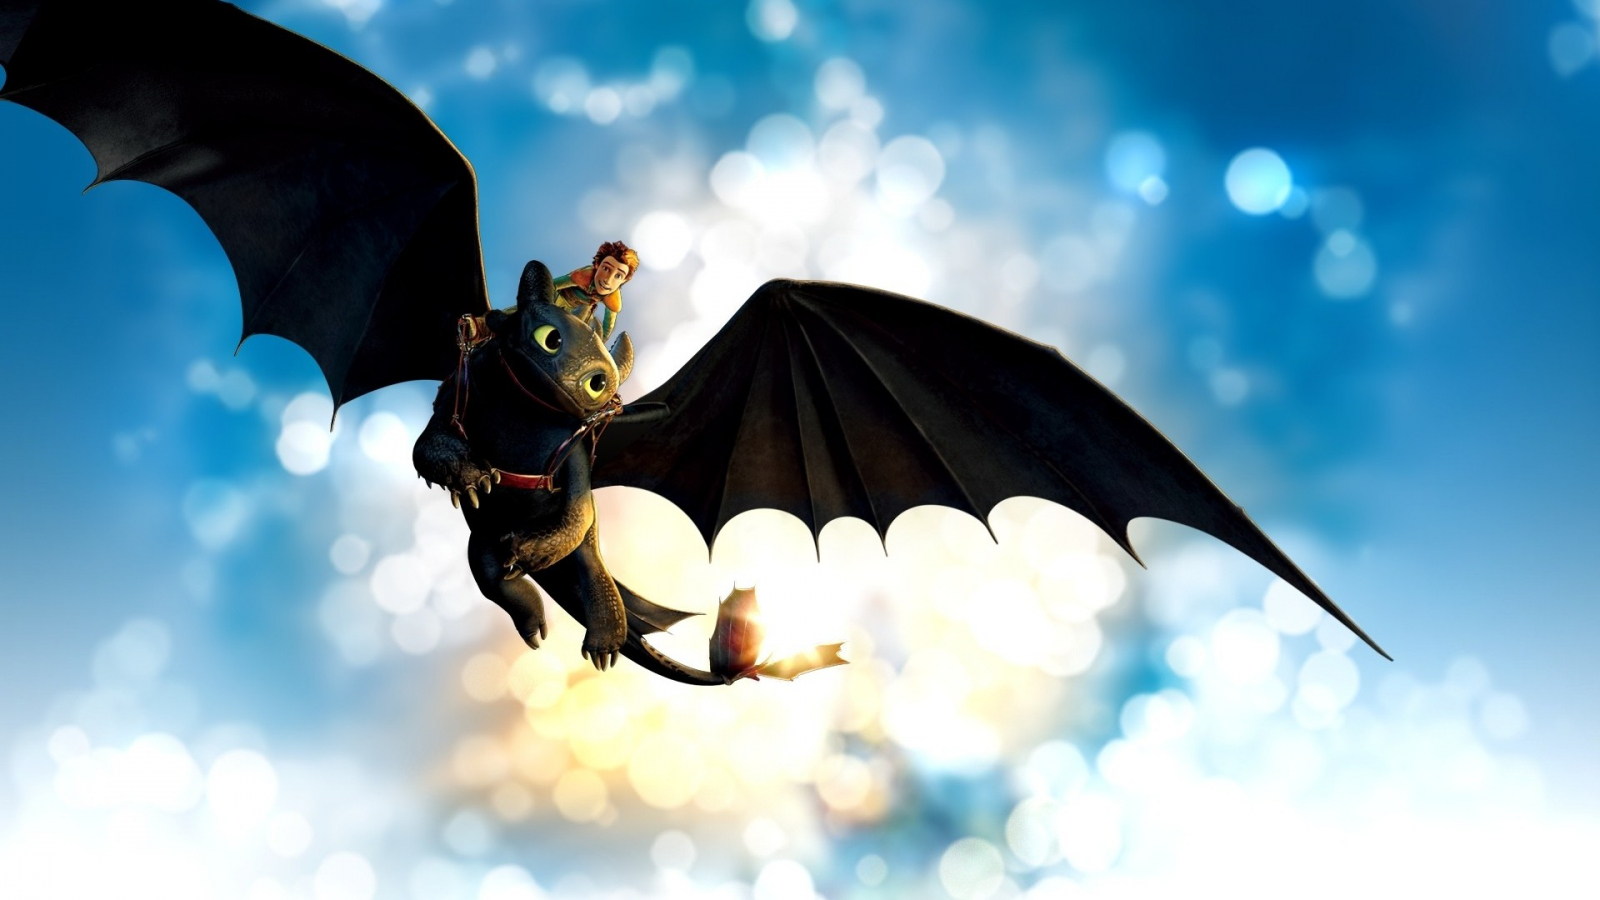 Free Download How To Train Your Dragon Wallpaper 1920x1080 How To